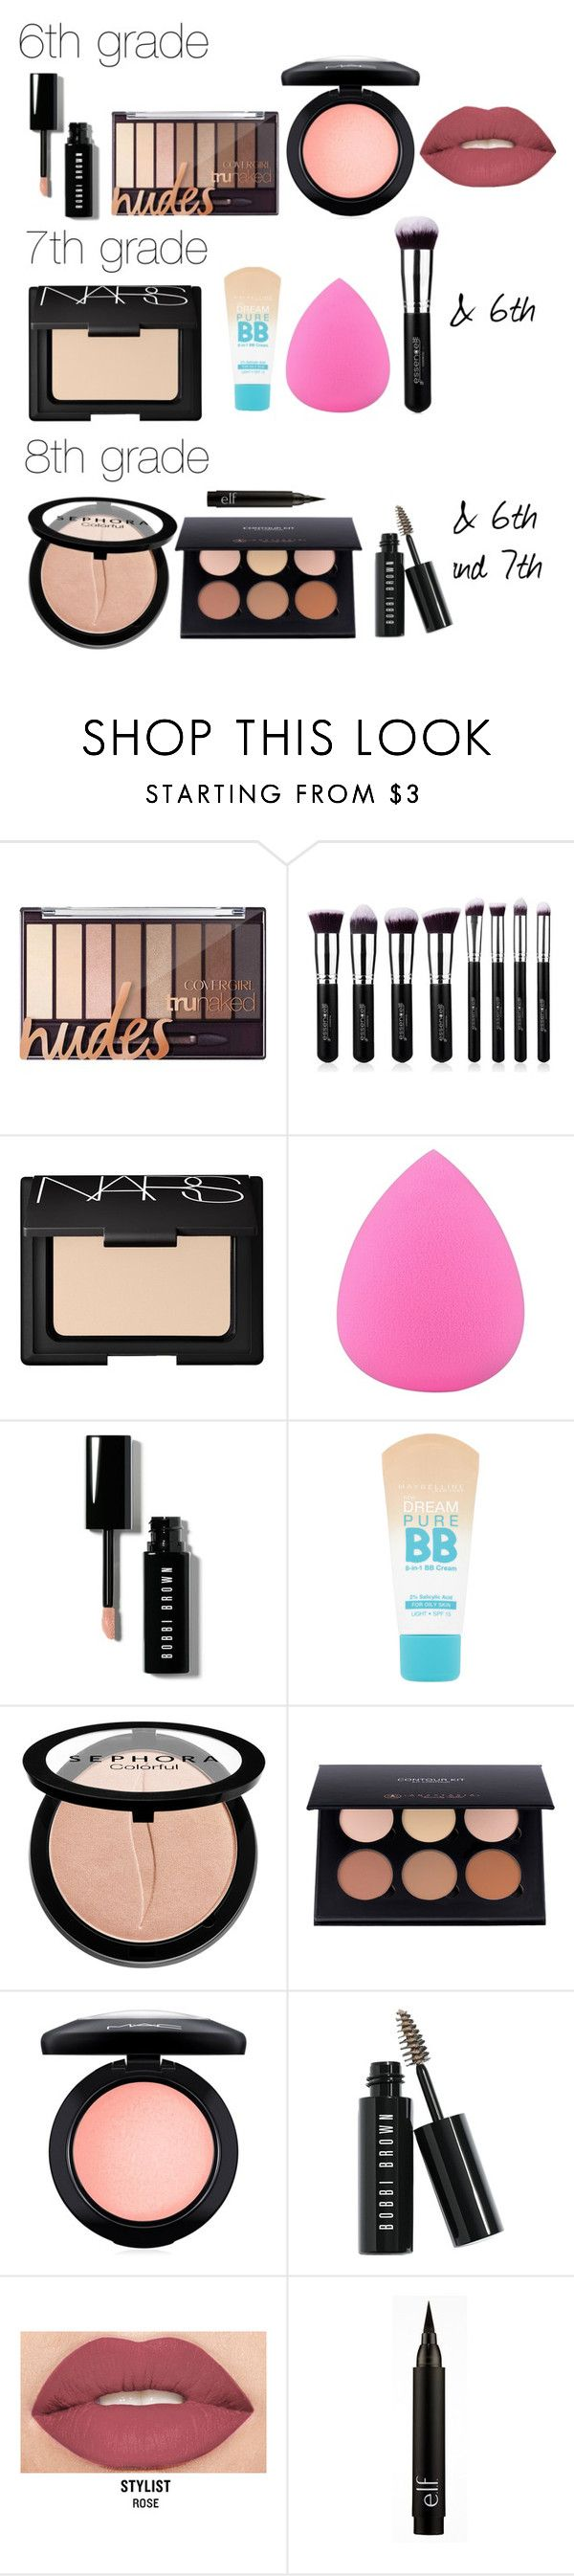 """""""Middle School Makeup"""" by katerogers219 on Polyvore featuring beauty, NARS Cosmetics, Zodaca, Bobbi Brown Cosmetics, Maybelline, Sephora Collection, ..."""